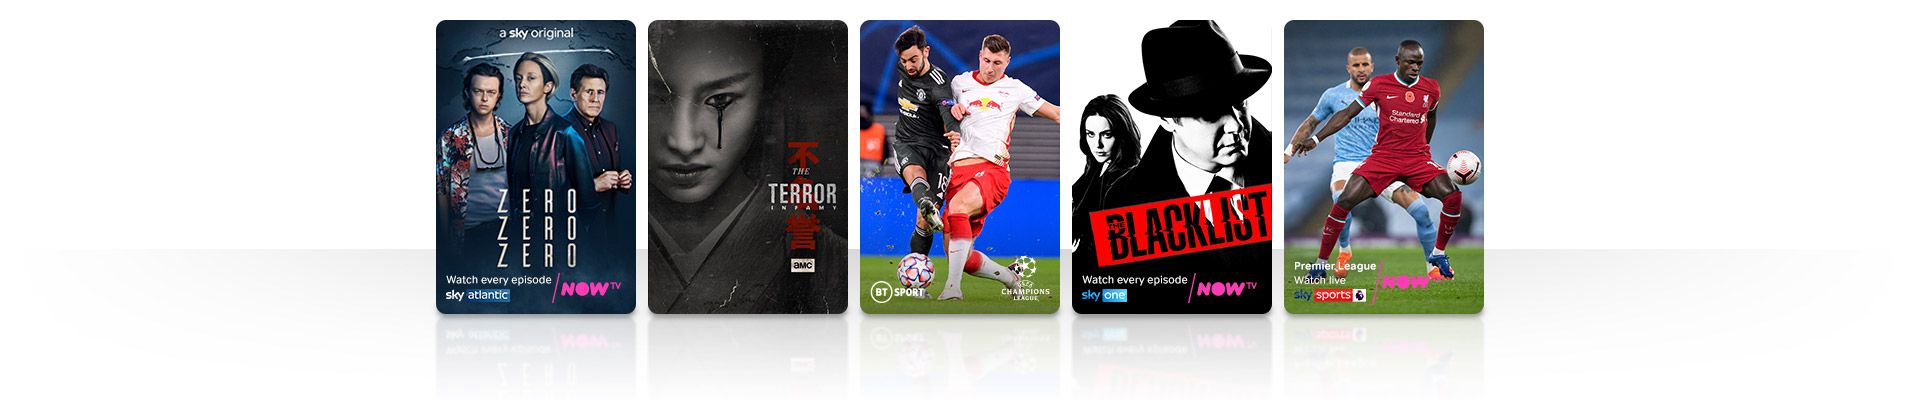 TV Shows, Zero, The Terror and Blacklist and football from BT Sport, Sky One and NOW TV